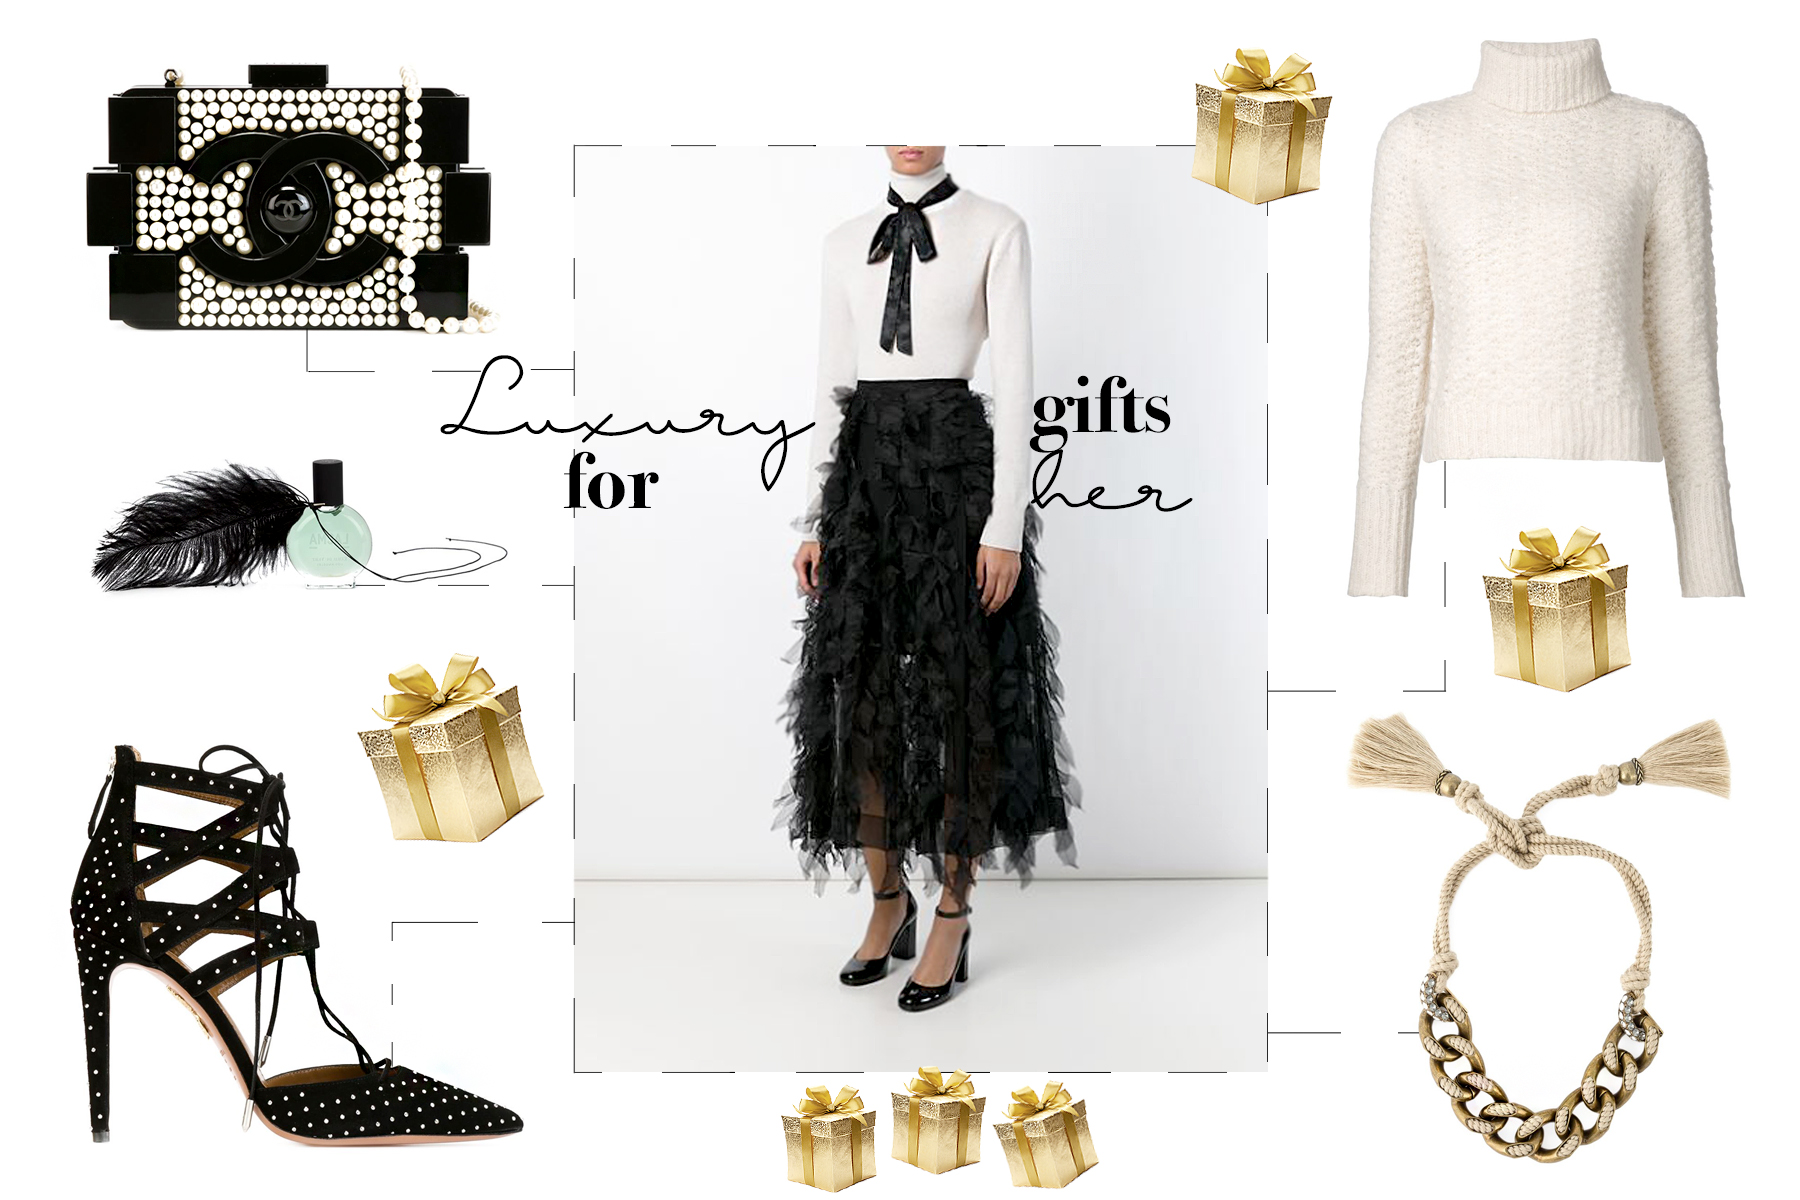 ee258d9351 My Luxury Christmas Wishlist | CATS & DOGS - A Couple's Fashion ...